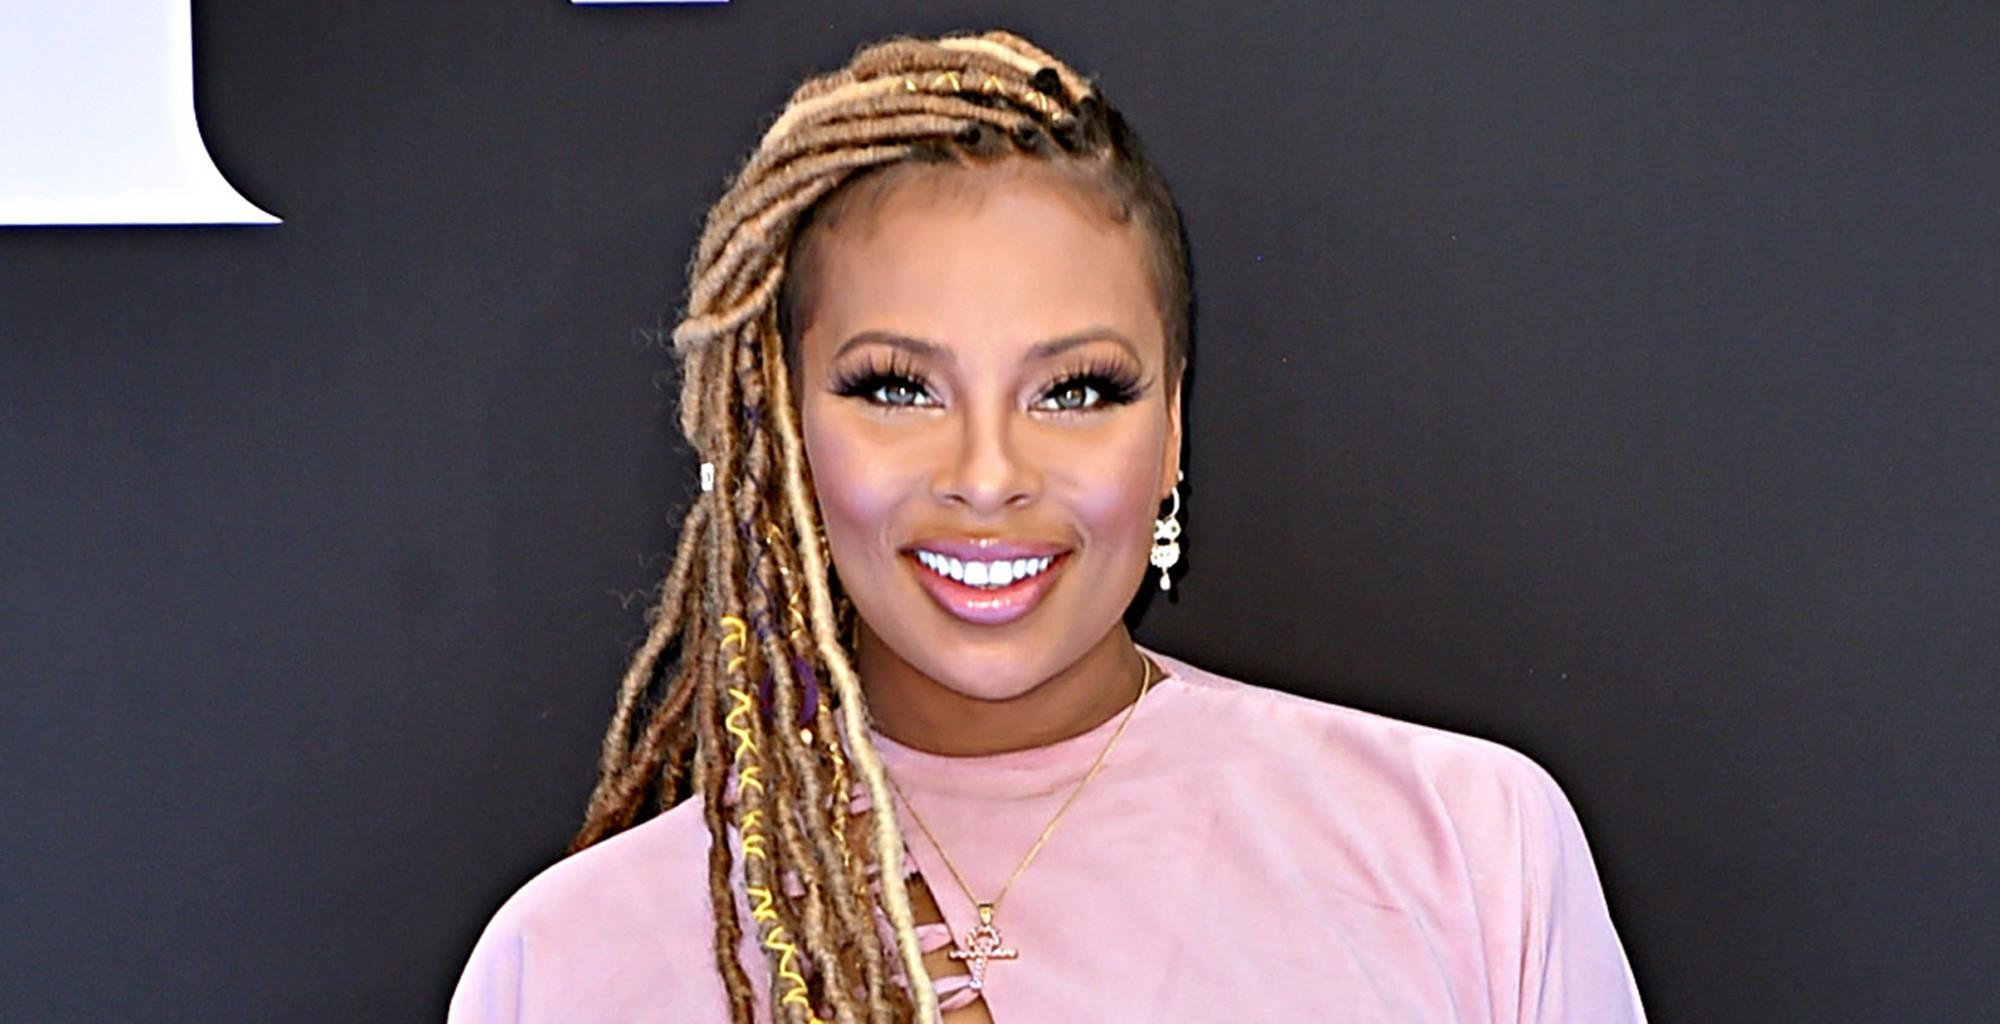 Eva Marcille's Video With Her Kids Has Fans In Awe - Check Out Marley, Mikey, And Maverick